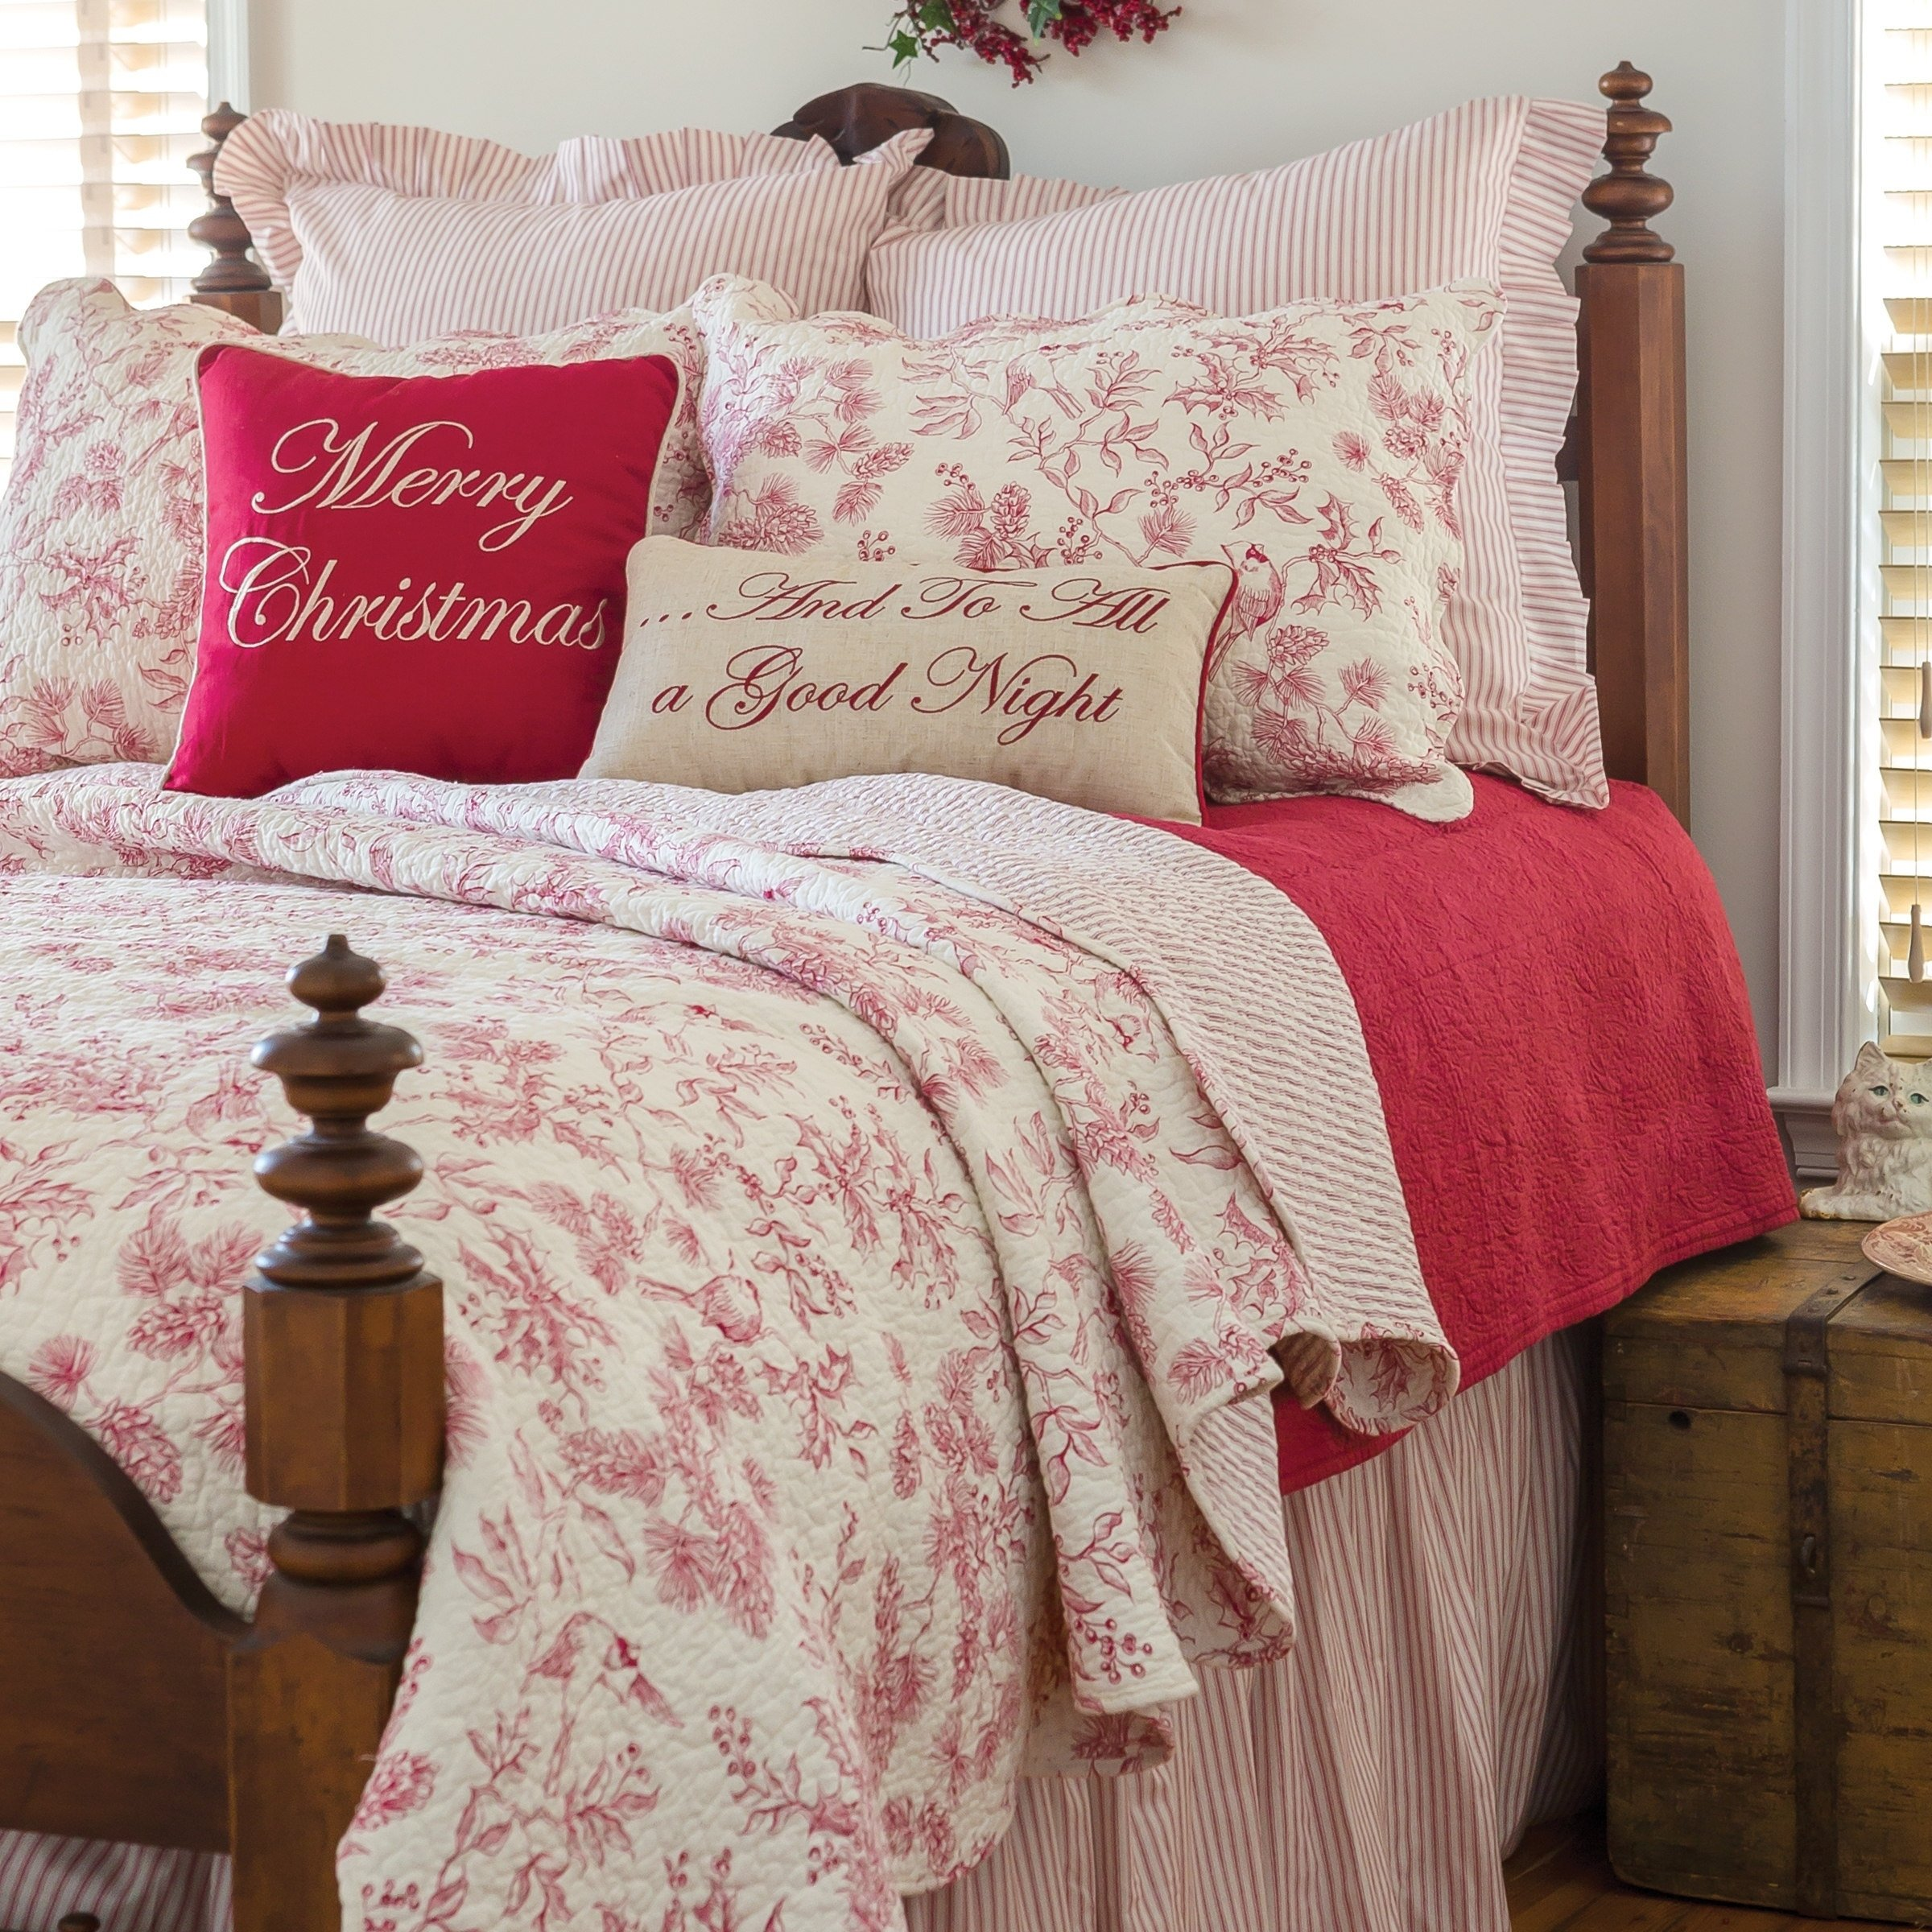 3 Piece White Red Christmas Full Queen Quilt Set, Shabby Chic Holiday Theme Bedding, Floral Pine Cones Cheerful Holly Berries Winter Flower Pattern Antique Evergreen Toile Scalloped Edge, Polyester